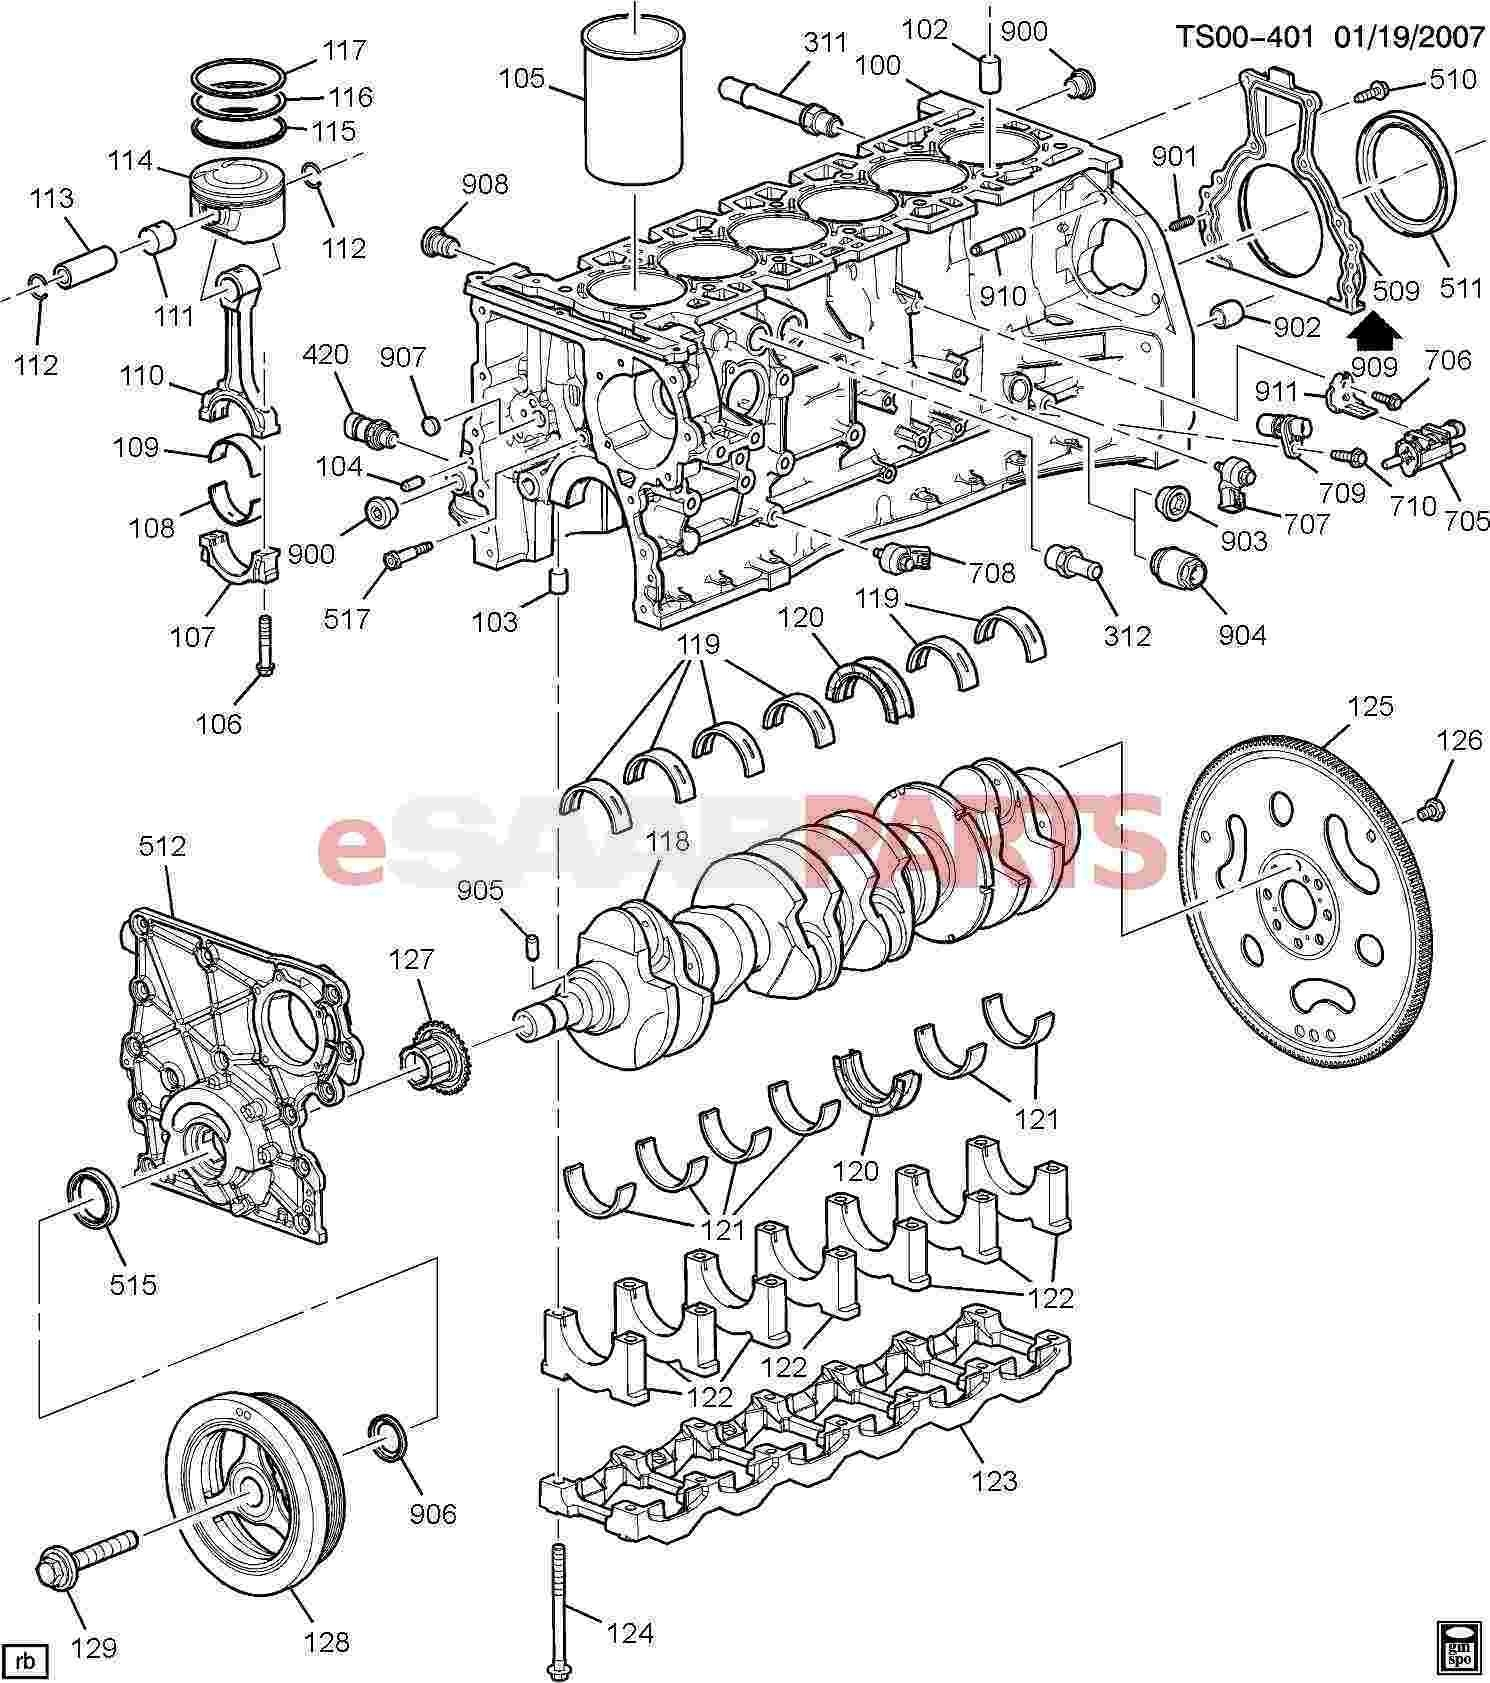 Engine Parts Diagram with Dimensions Auto Engine Parts Diagram ] Saab Plug M16x1 5—14 24 Od society Of Engine Parts Diagram with Dimensions